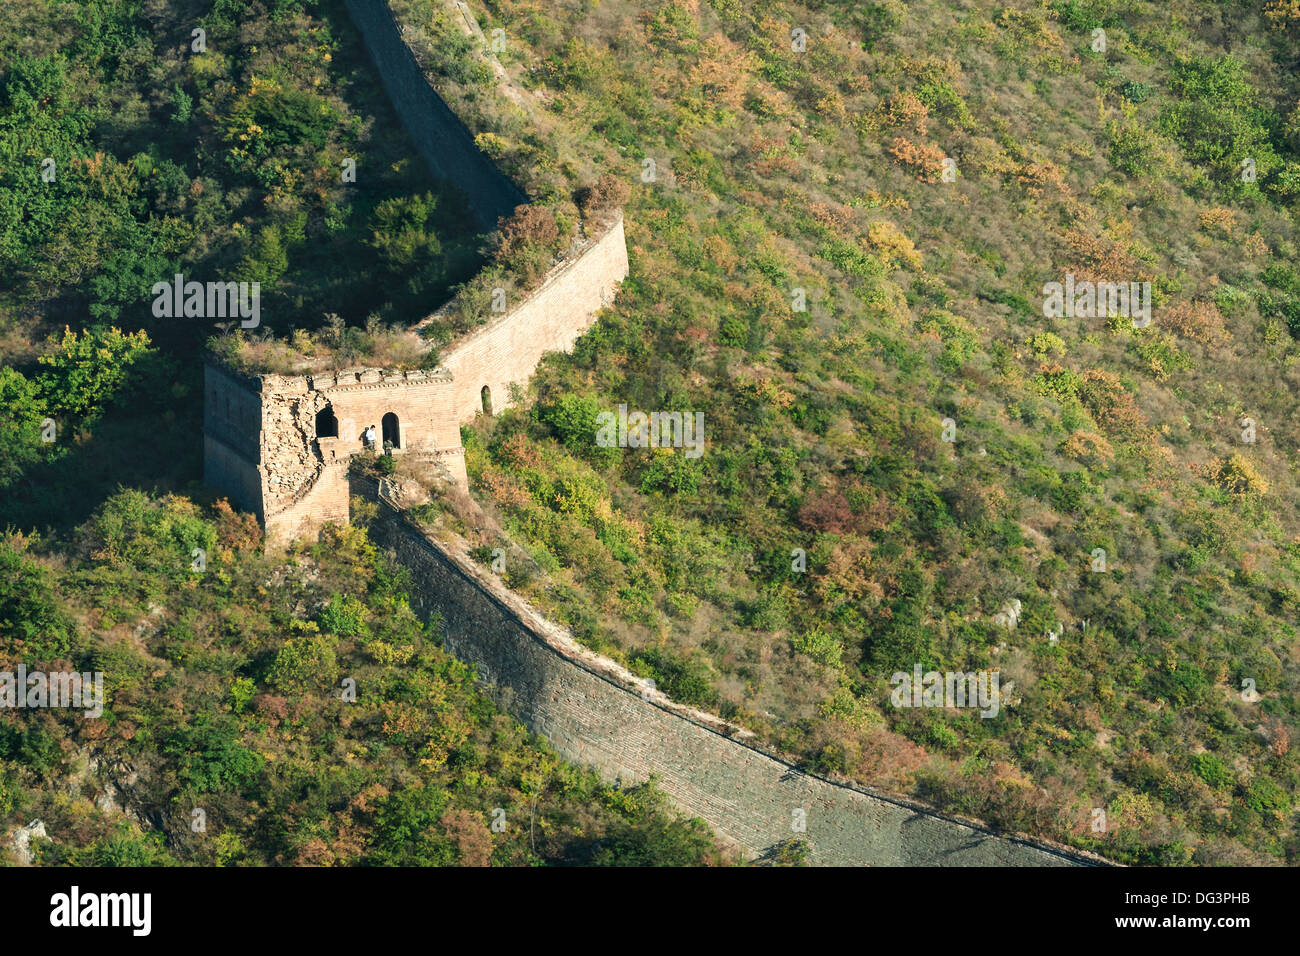 Hikers on a wild unrestored section of the Great Wall of China at Huanghua Cheng (Yellow Flower),  Huairou, China Stock Photo